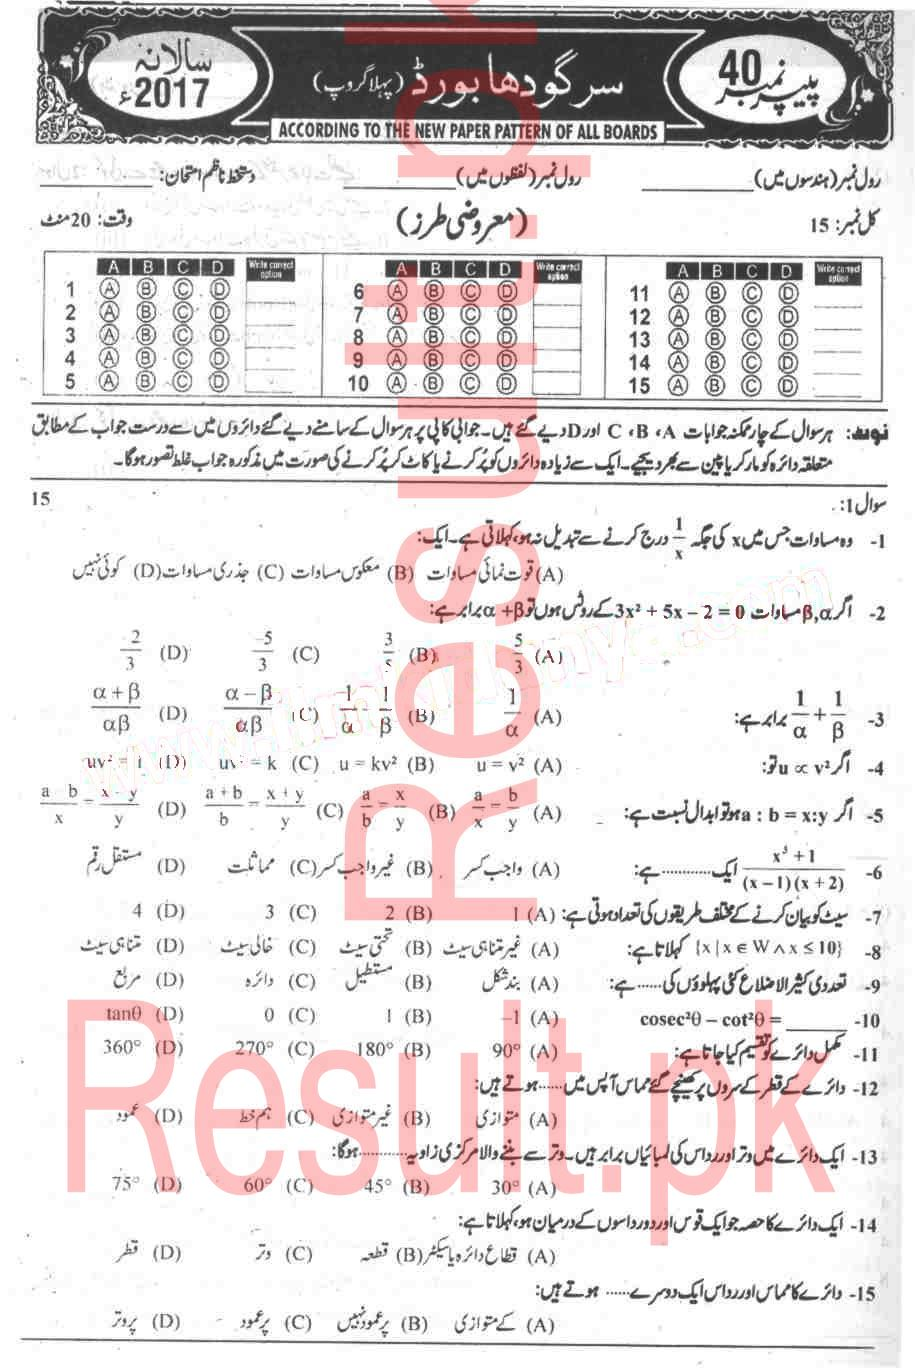 BISE Sargodha Board Past Papers 2019 Matric, SSC Part 1 & 2, 9th